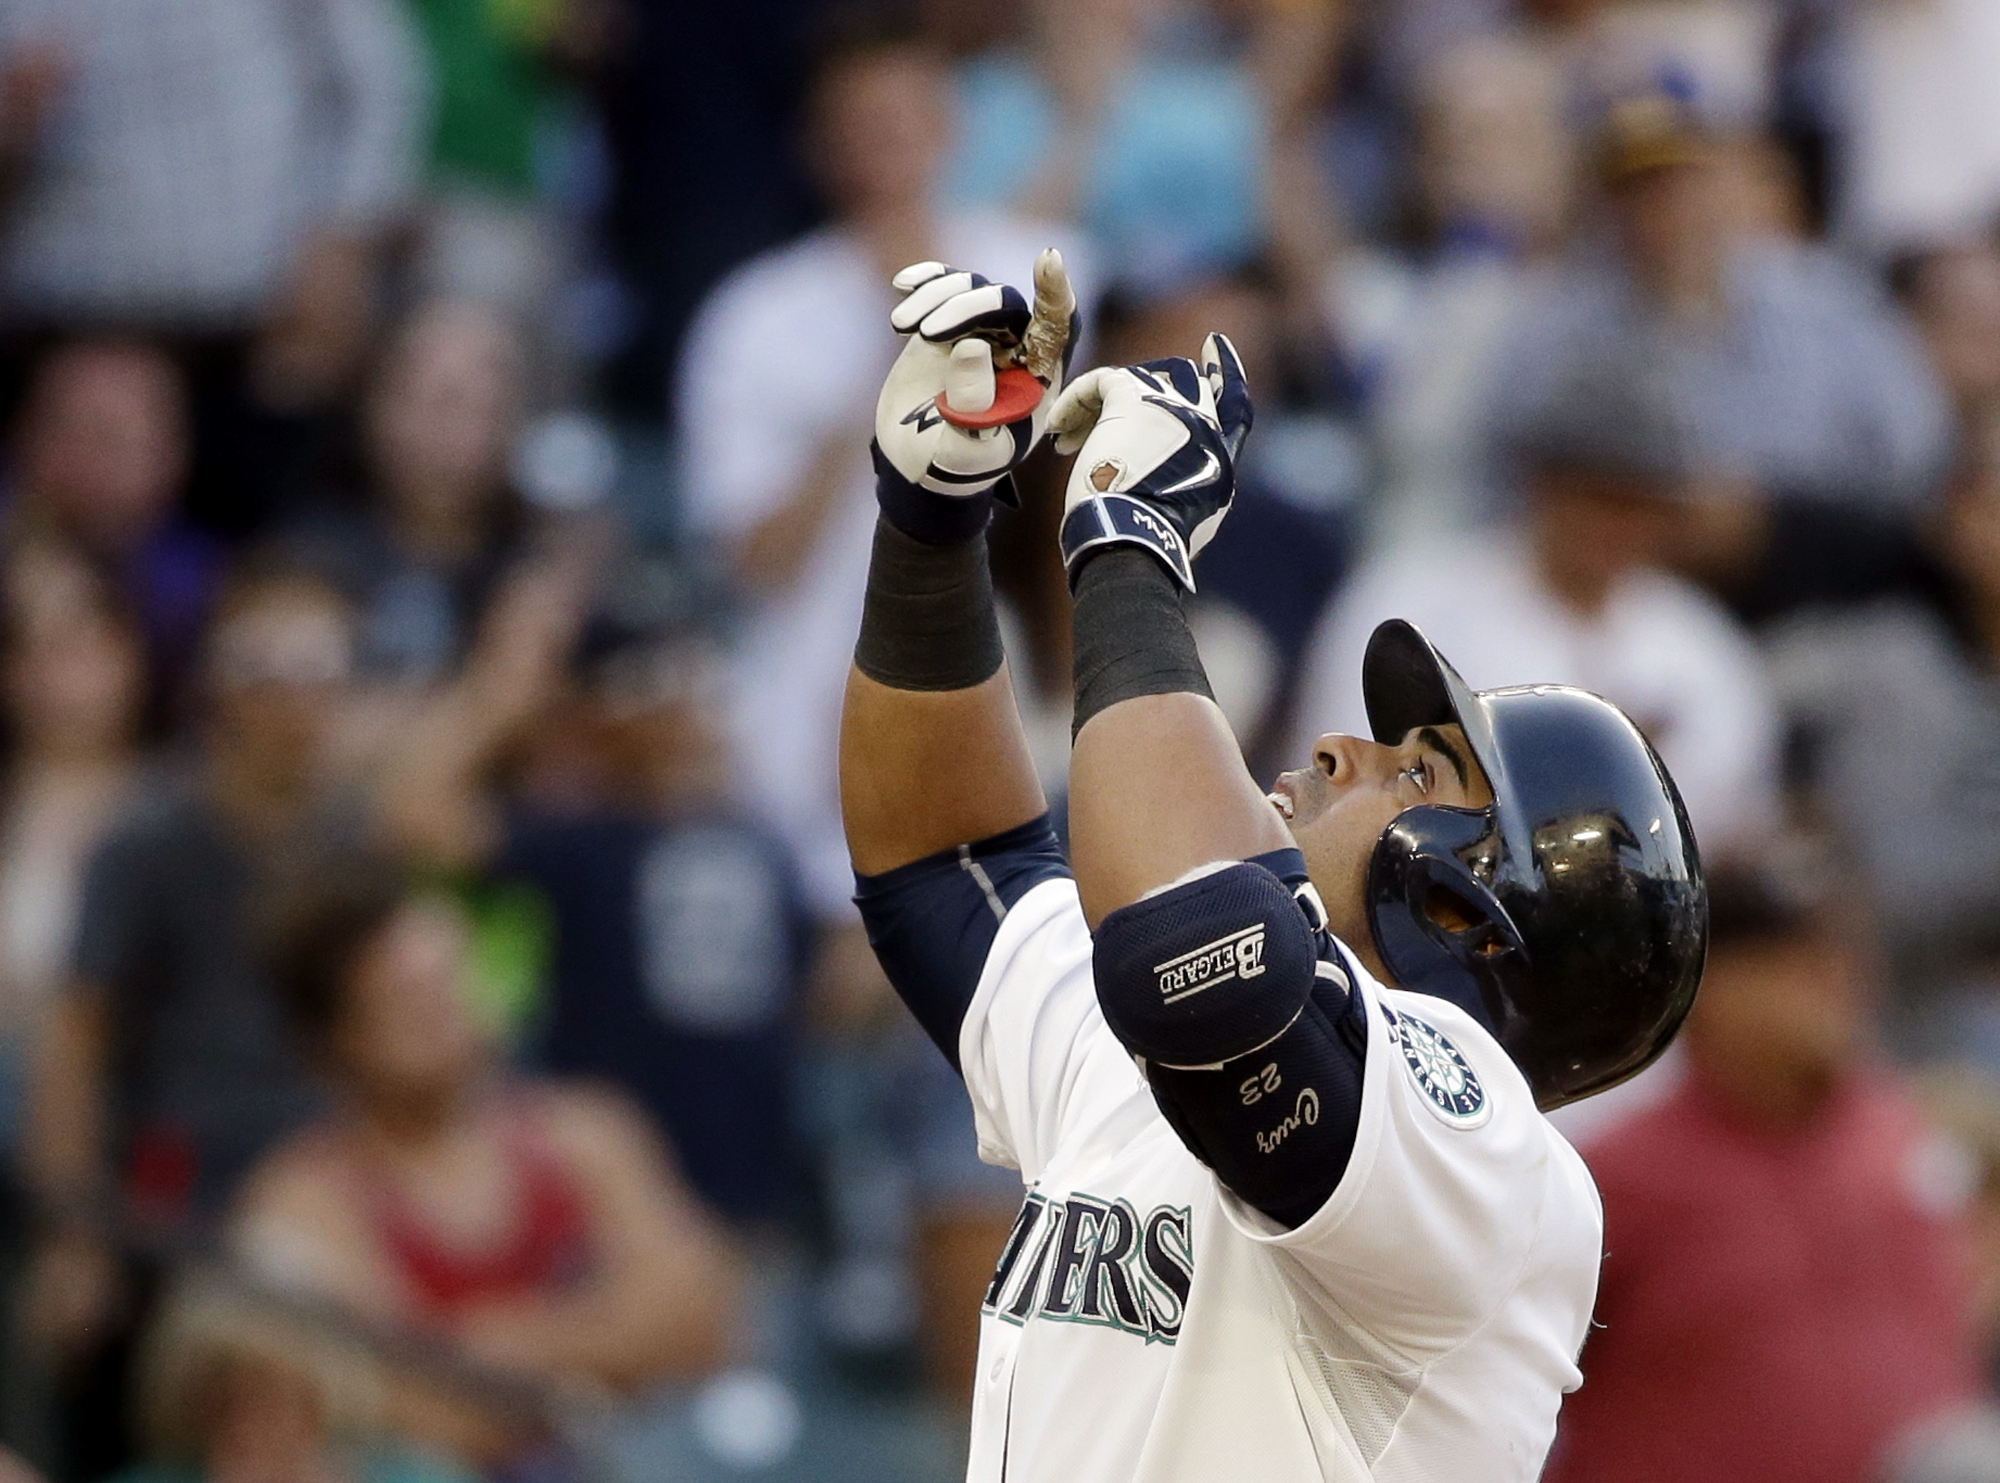 Seattle Mariners' Nelson Cruz points skyward as he crosses home on his home run against the Houston Astros during the third inning of a baseball game Saturday, June 20, 2015, in Seattle. (AP Photo/Elaine Thompson)